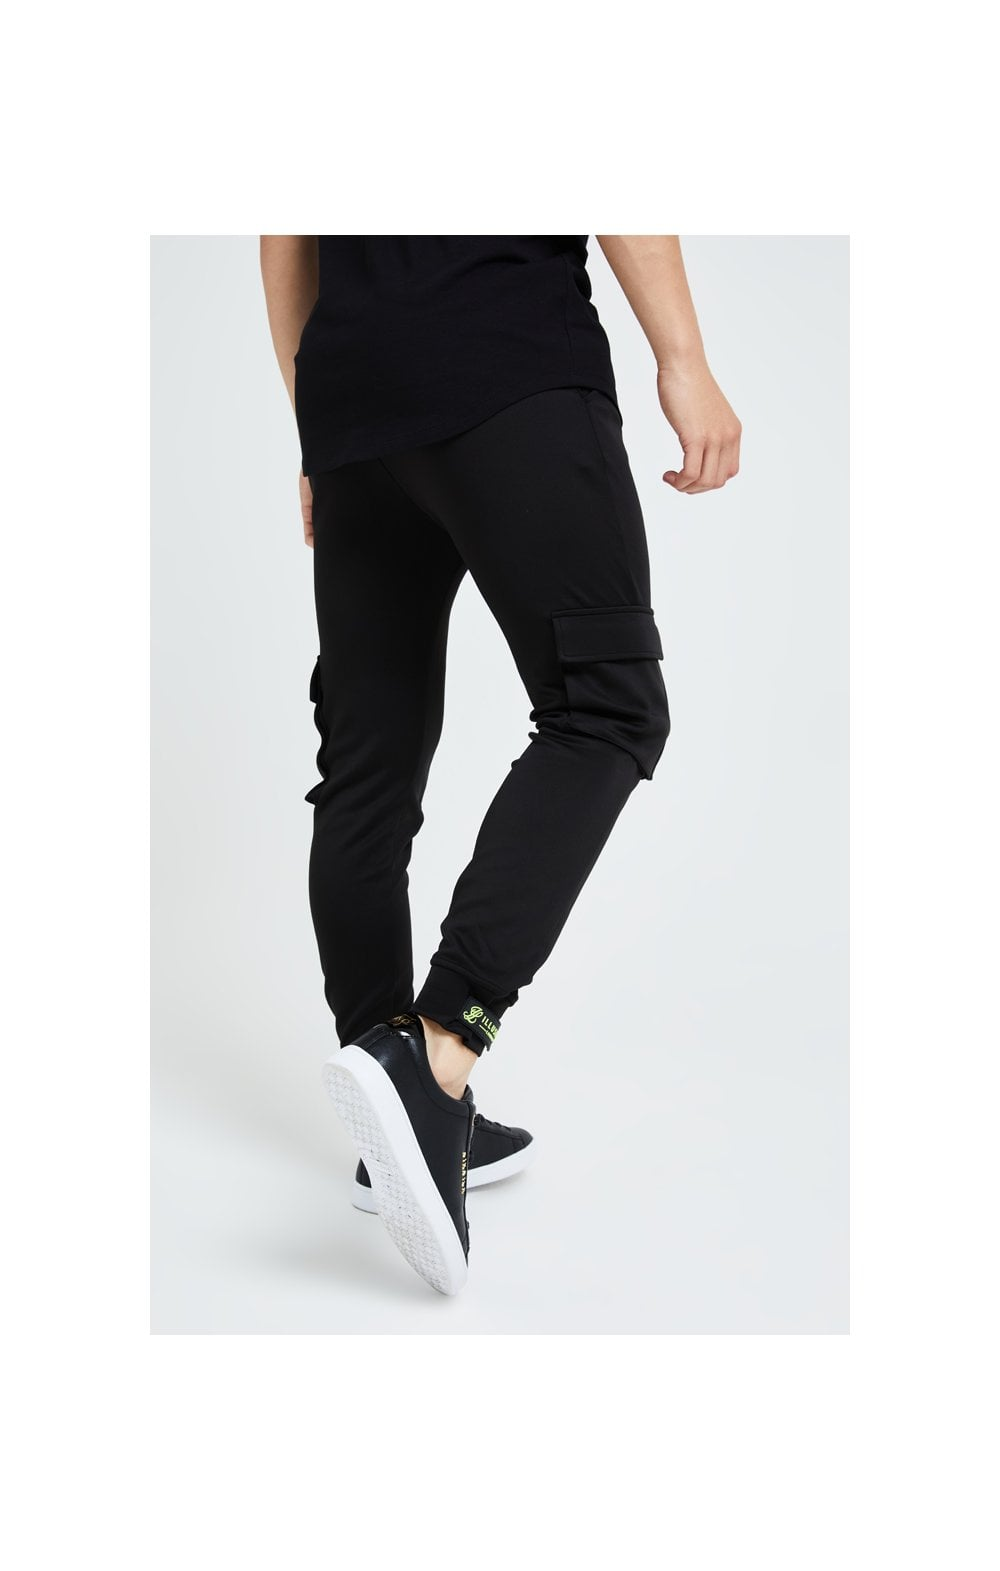 Illusive London Element Cargo Joggers - Black & Green (2)